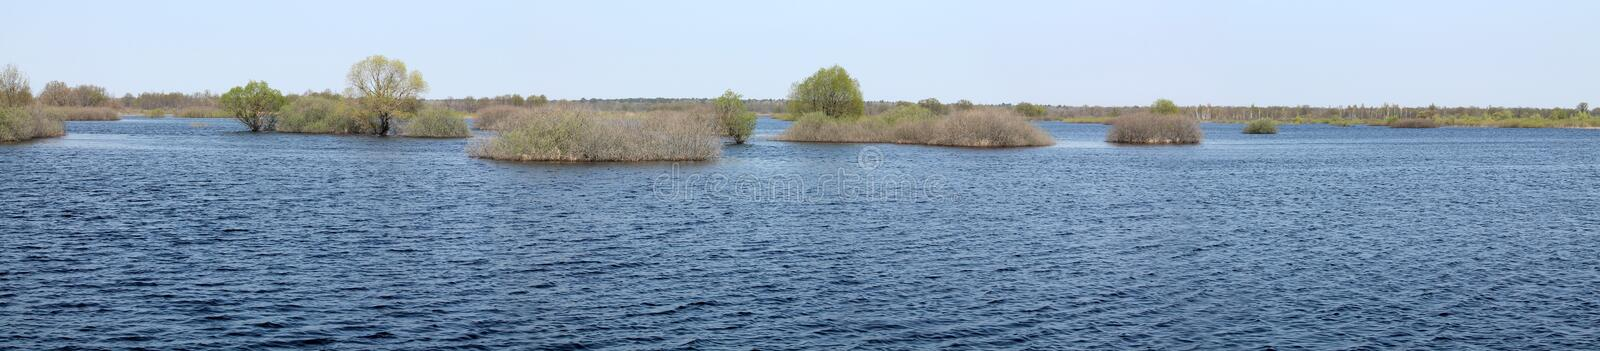 Panoramic landscape with spring flooding of Pripyat River near Borki, Zhytkavichy District of Gomel Region of Belarus. Panoramic landscape with spring flooding stock images